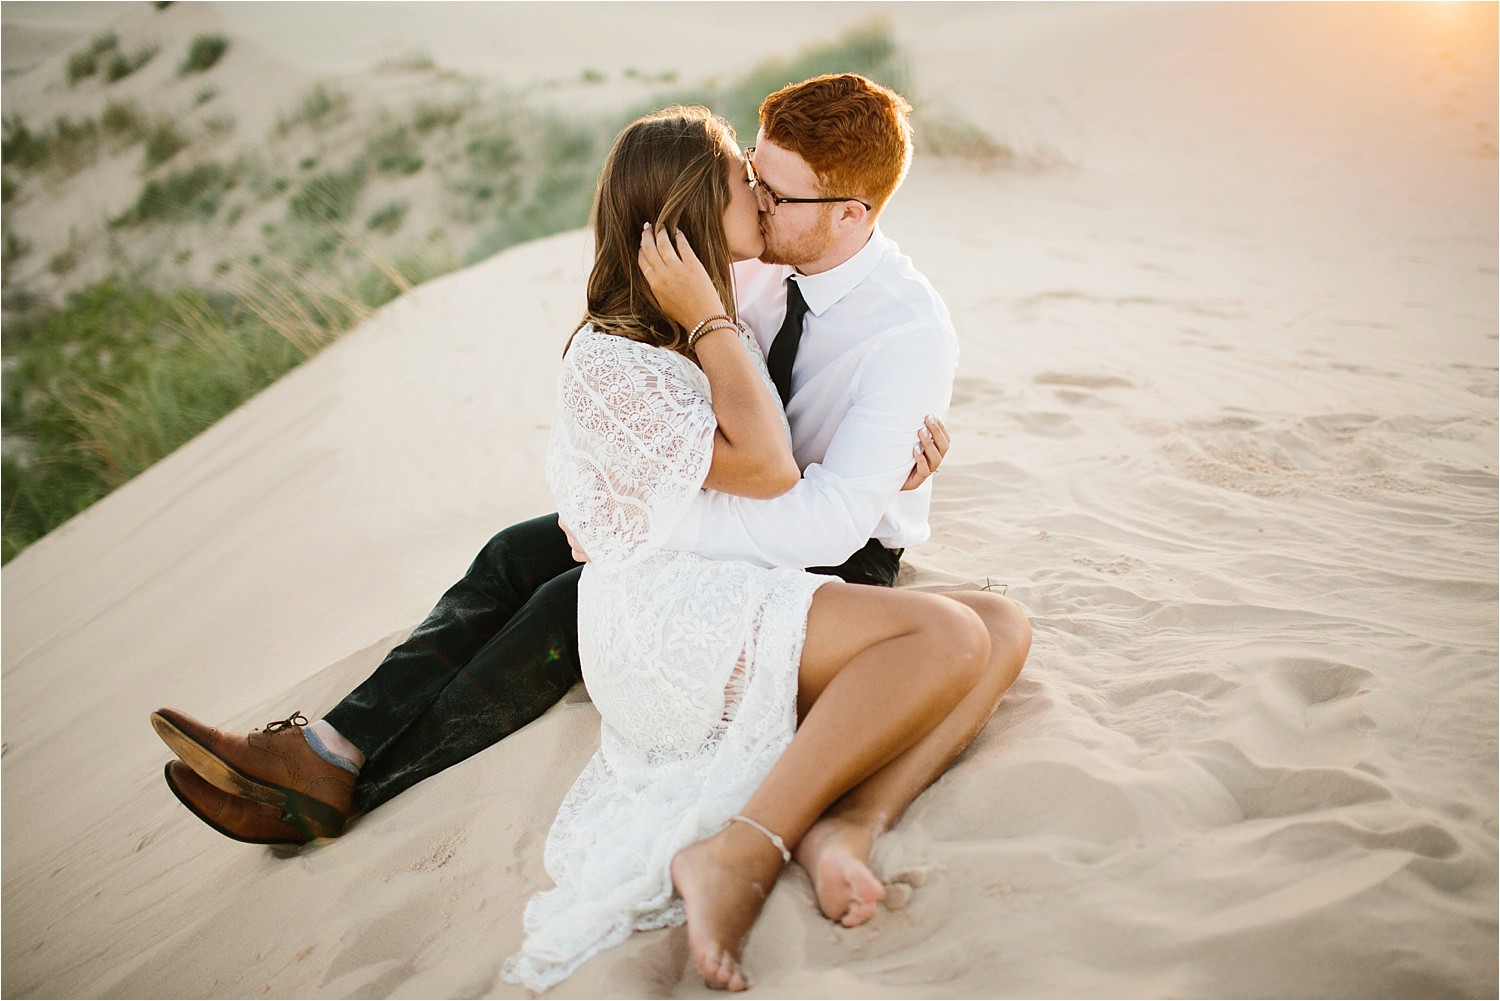 Lauren + Jacob __ a monahans sand dunes engagement session at sunrise by North Texas Wedding Photographer, Rachel Meagan Photography __ 15